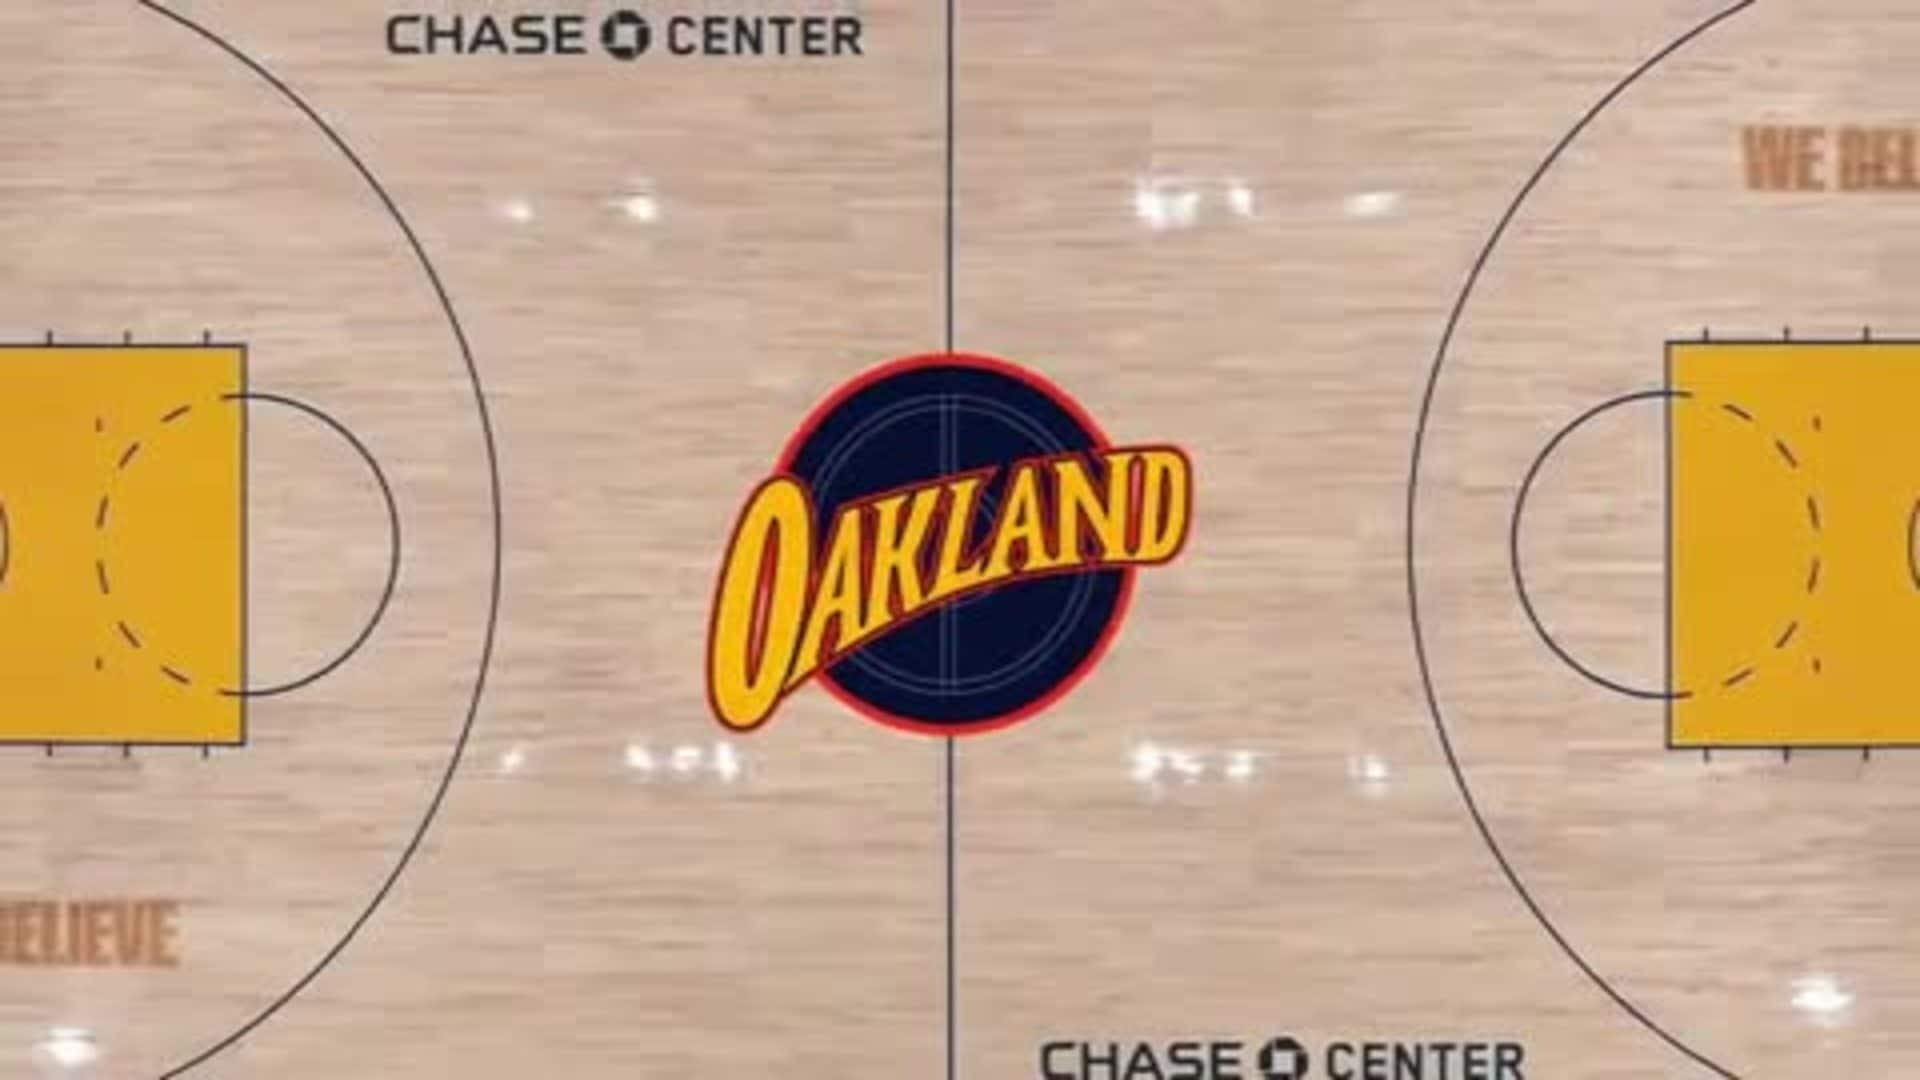 Oakland Forever Courts Coming 2021